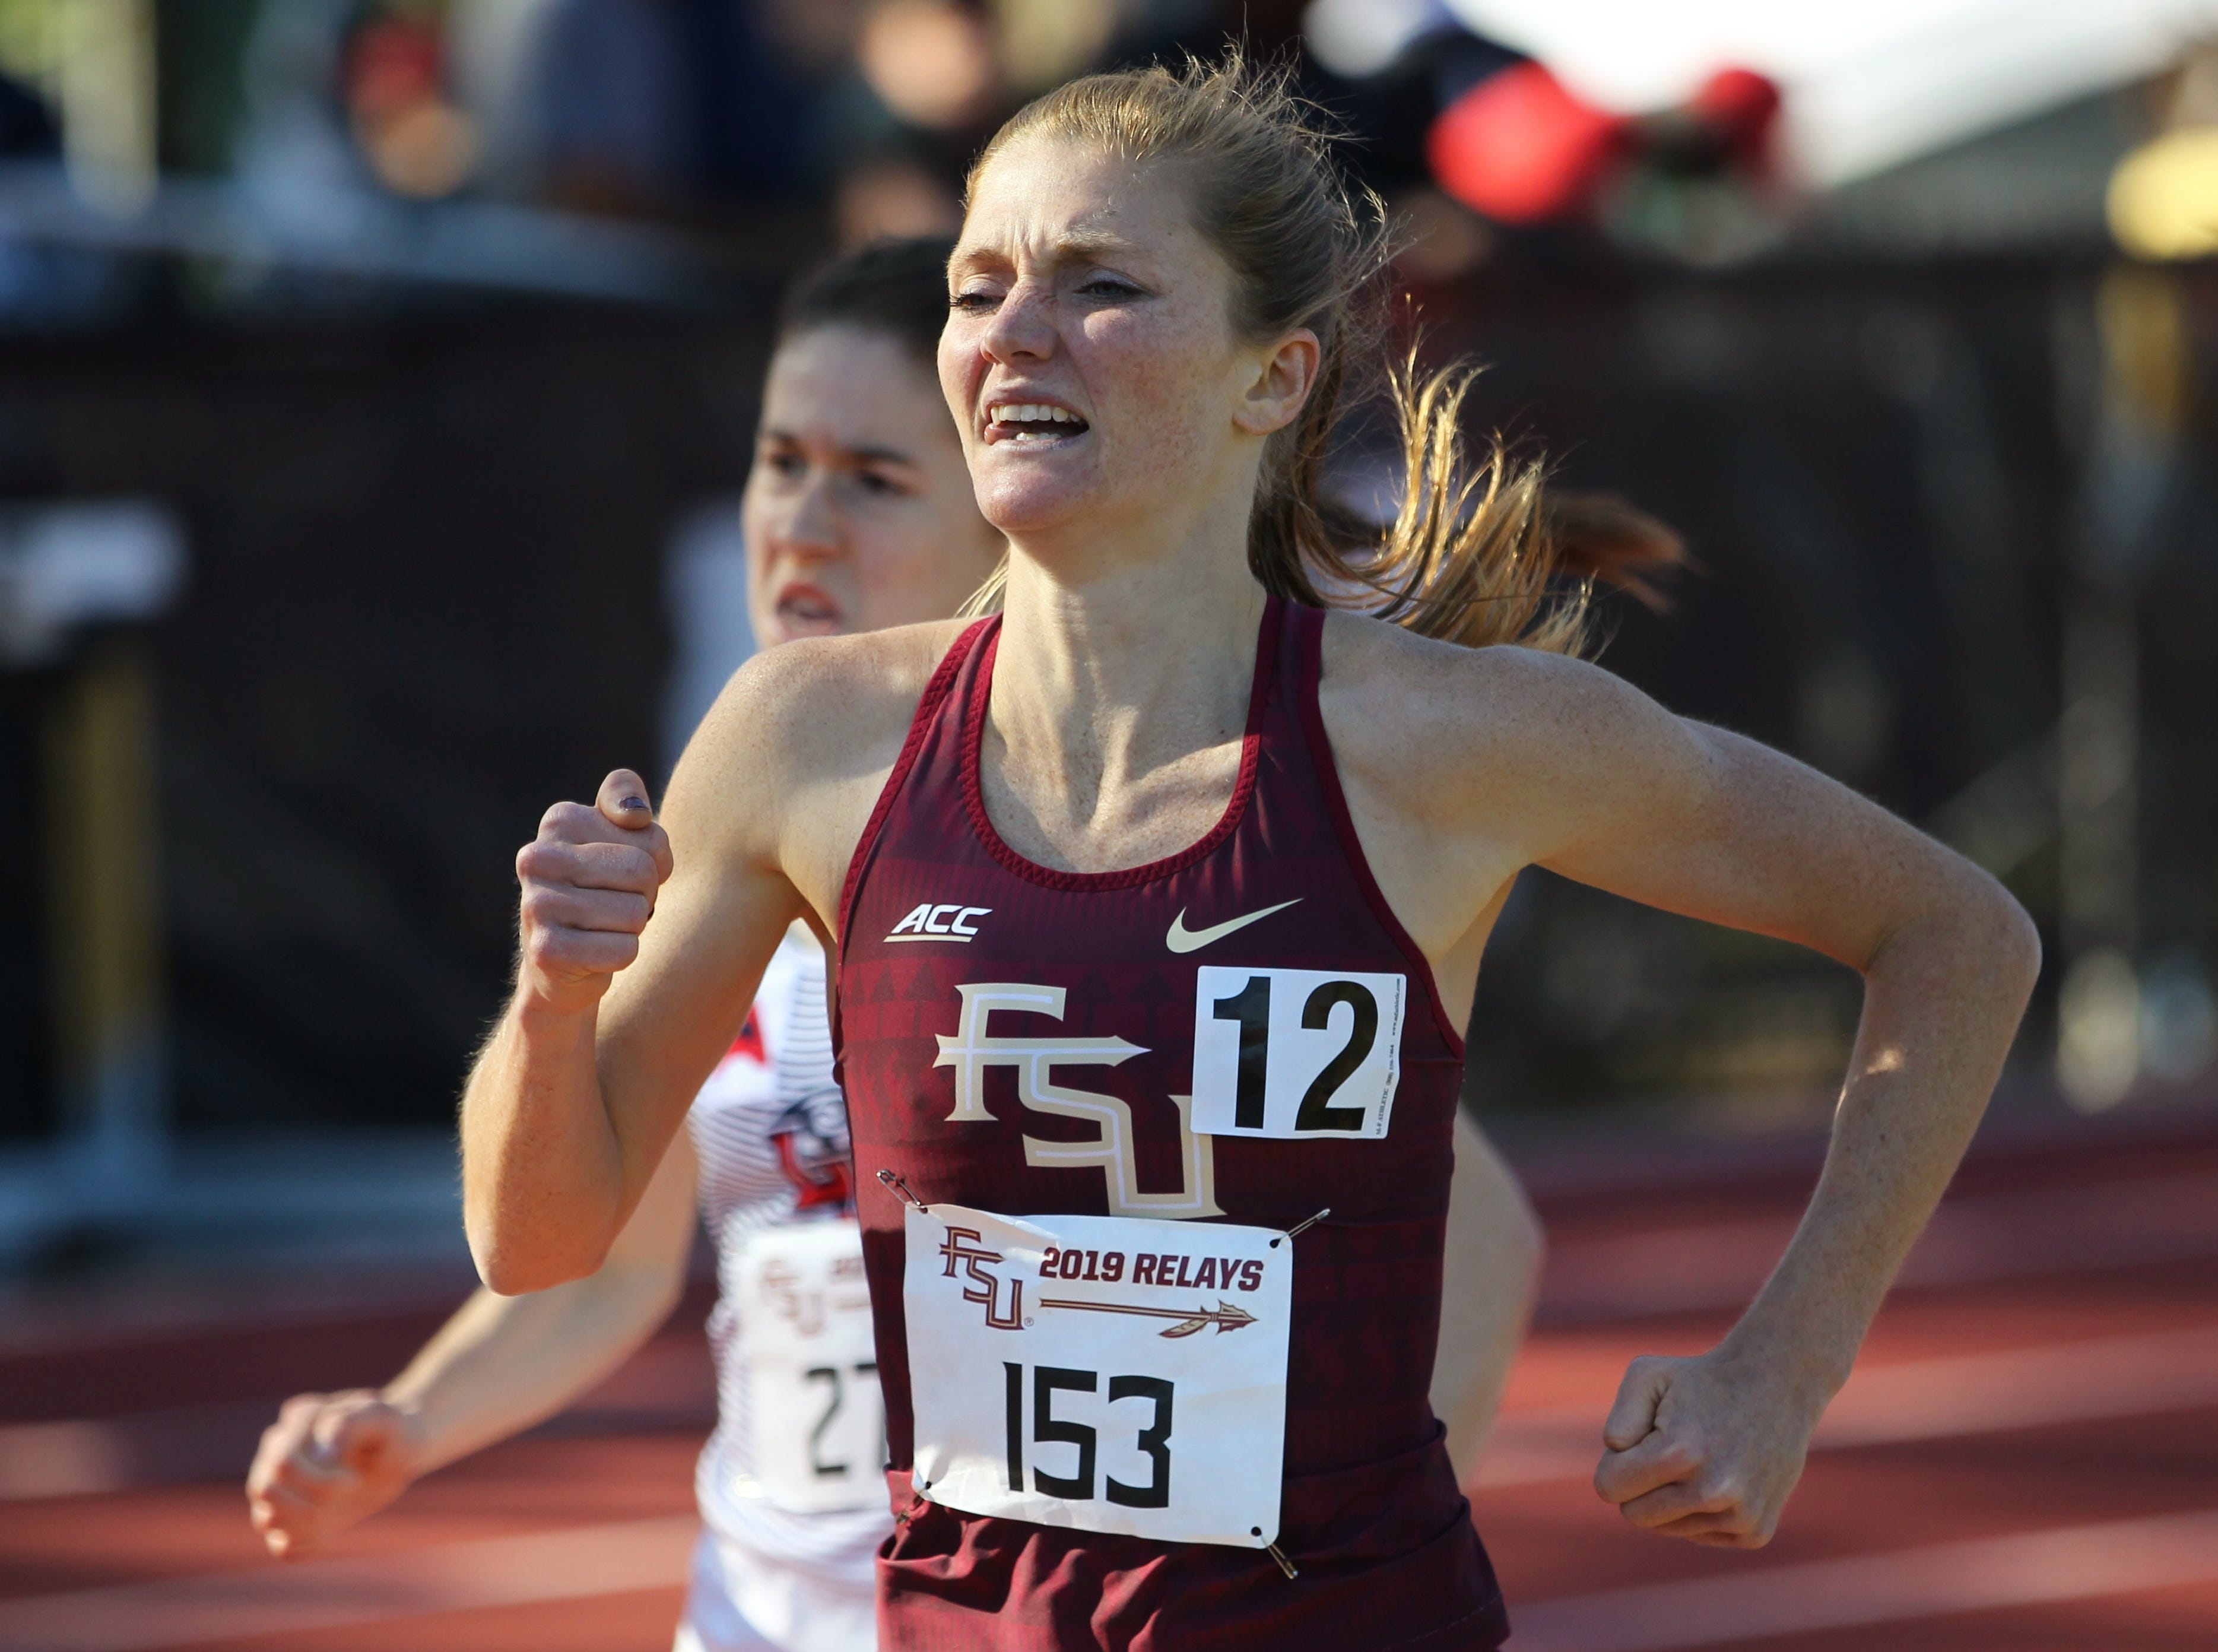 Florida State senior Althea Hewitt finishes the 1500-meter run during Friday's college portion of the FSU Relays at Mike Long Track on March 22, 2019.